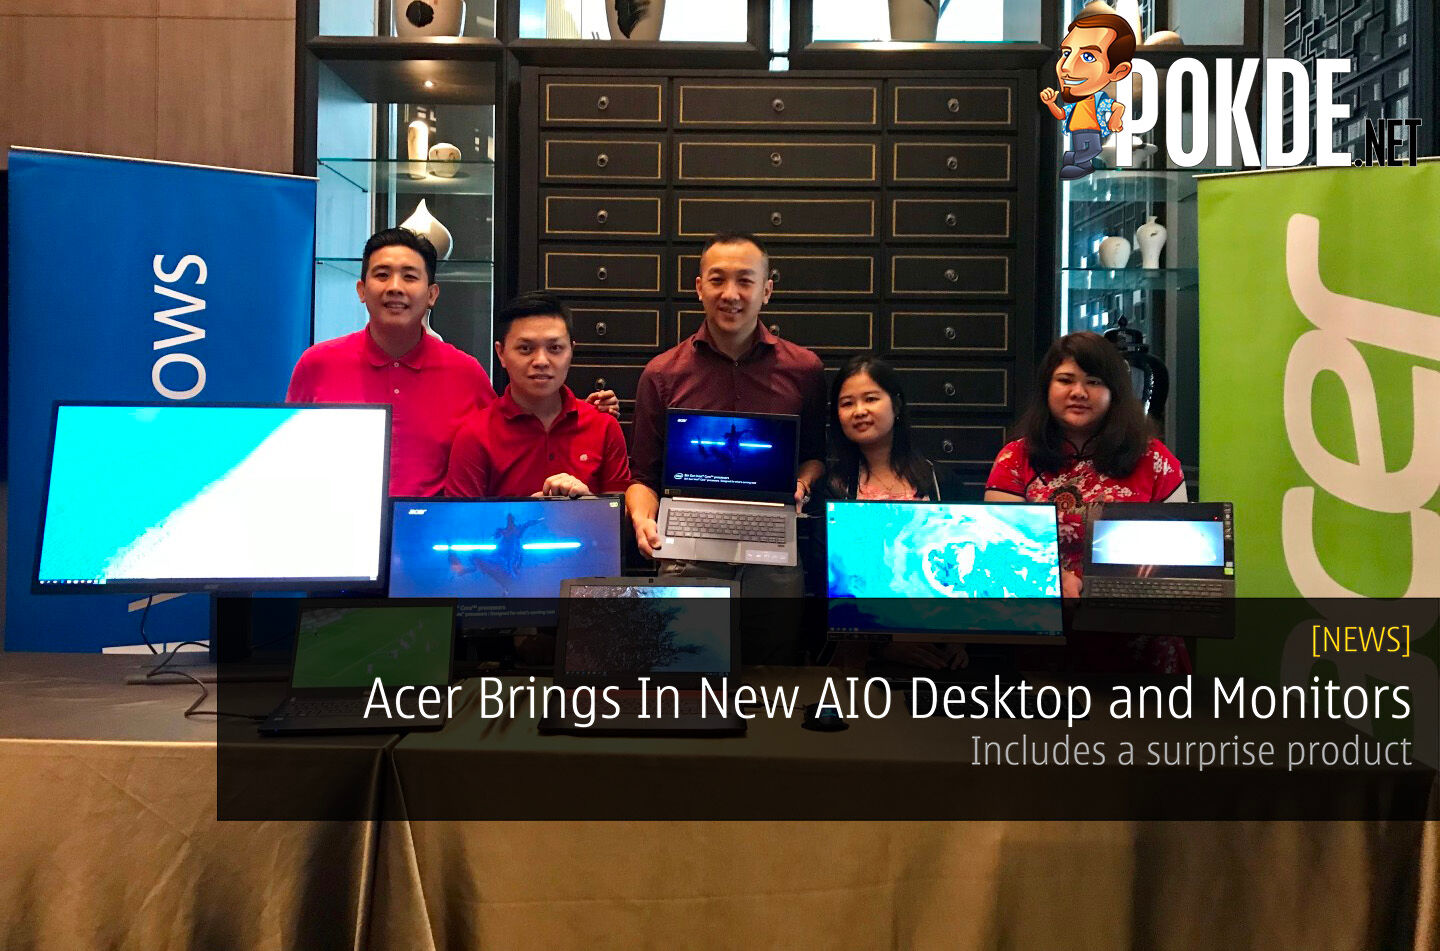 Acer Brings In New AIO Desktop and Monitors - Includes a surprise product 24